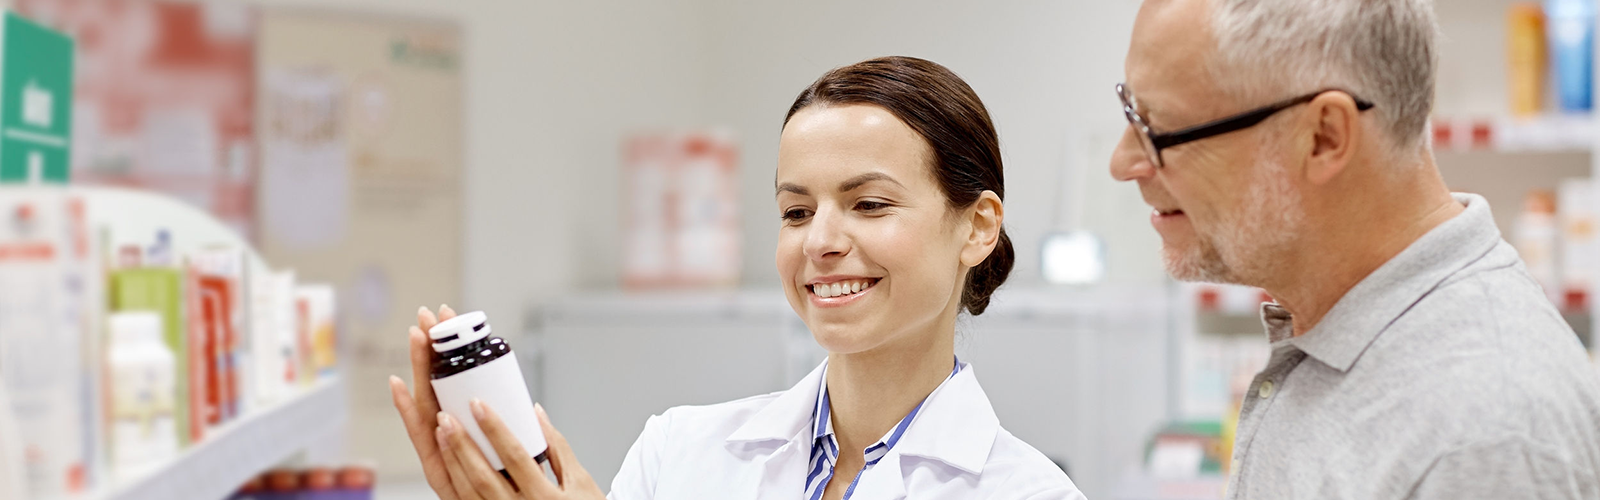 Blog locum blueprint limited our team consists of qualified pharmacists malvernweather Gallery